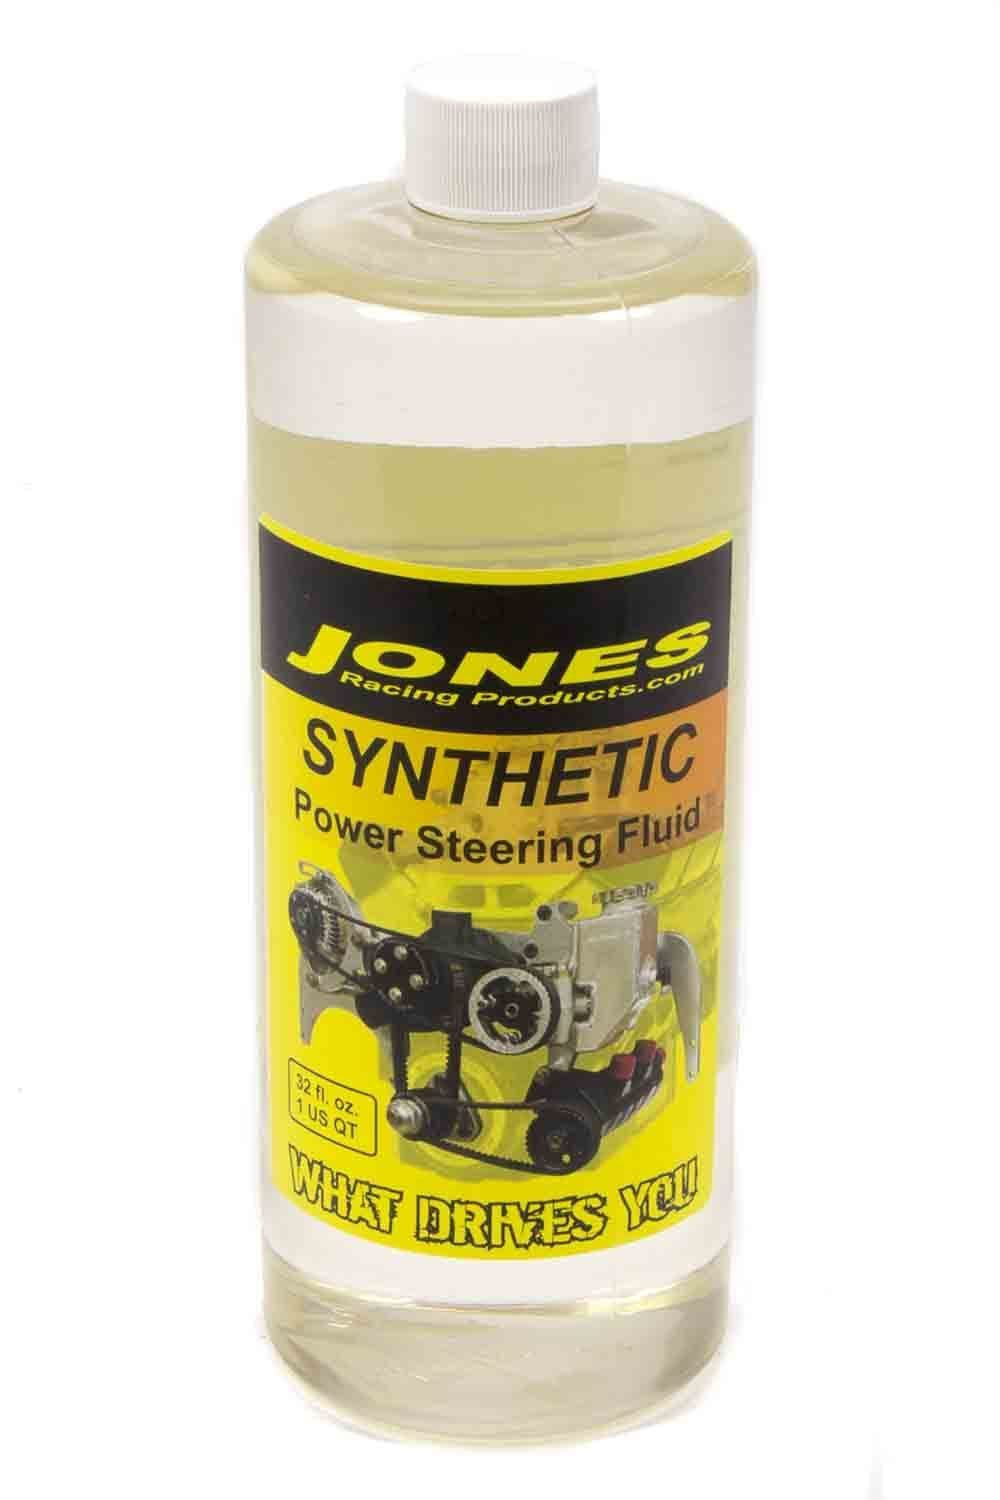 Jones Racing Sweet Synthetic Power Steering Fluid, 32 oz.